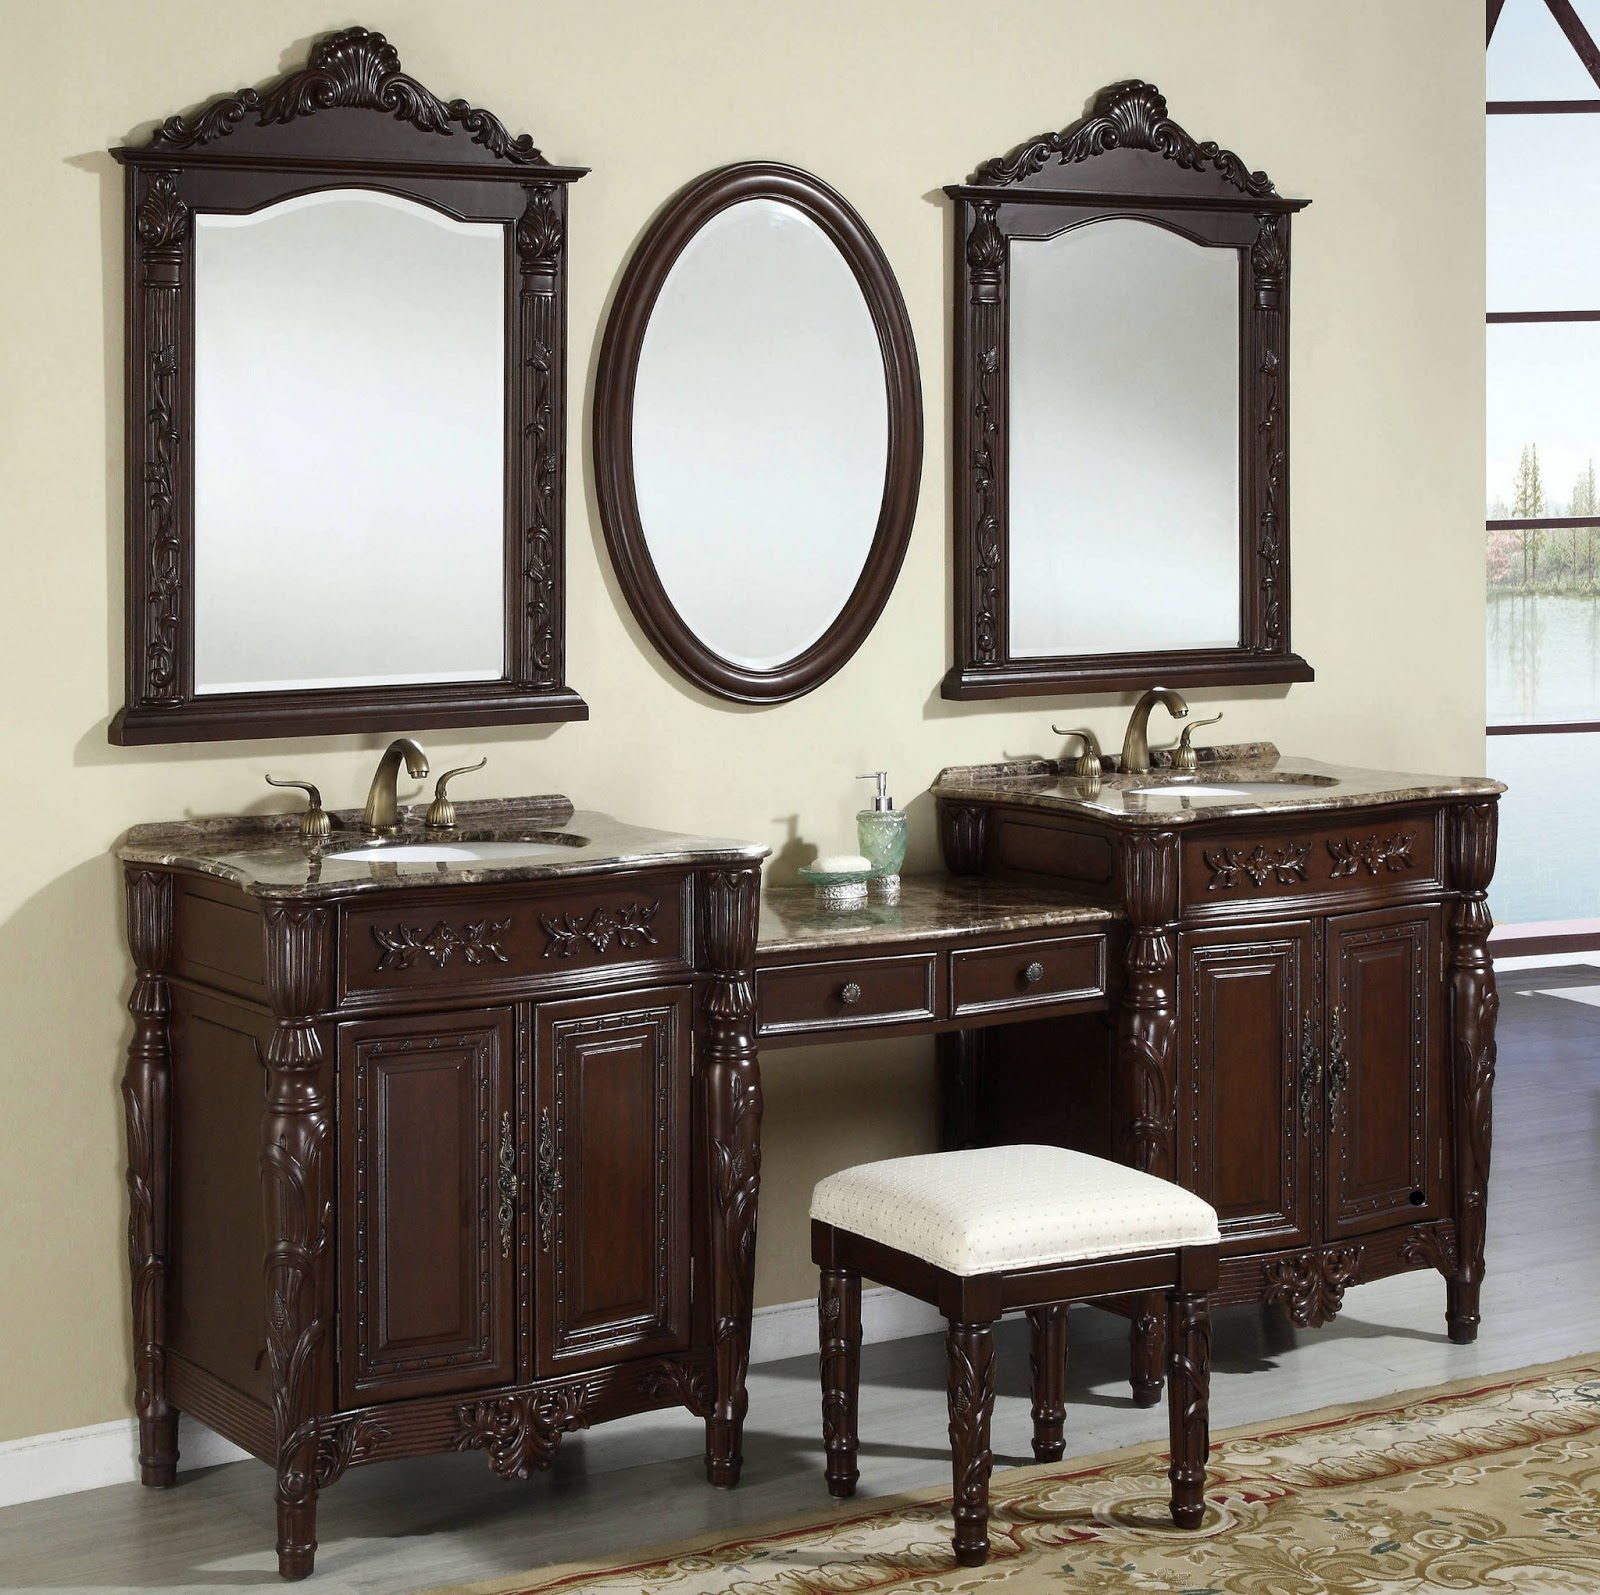 Vanity Mirrors Bathroom Vanity Mirrors Models And Buying Tips Cabinets